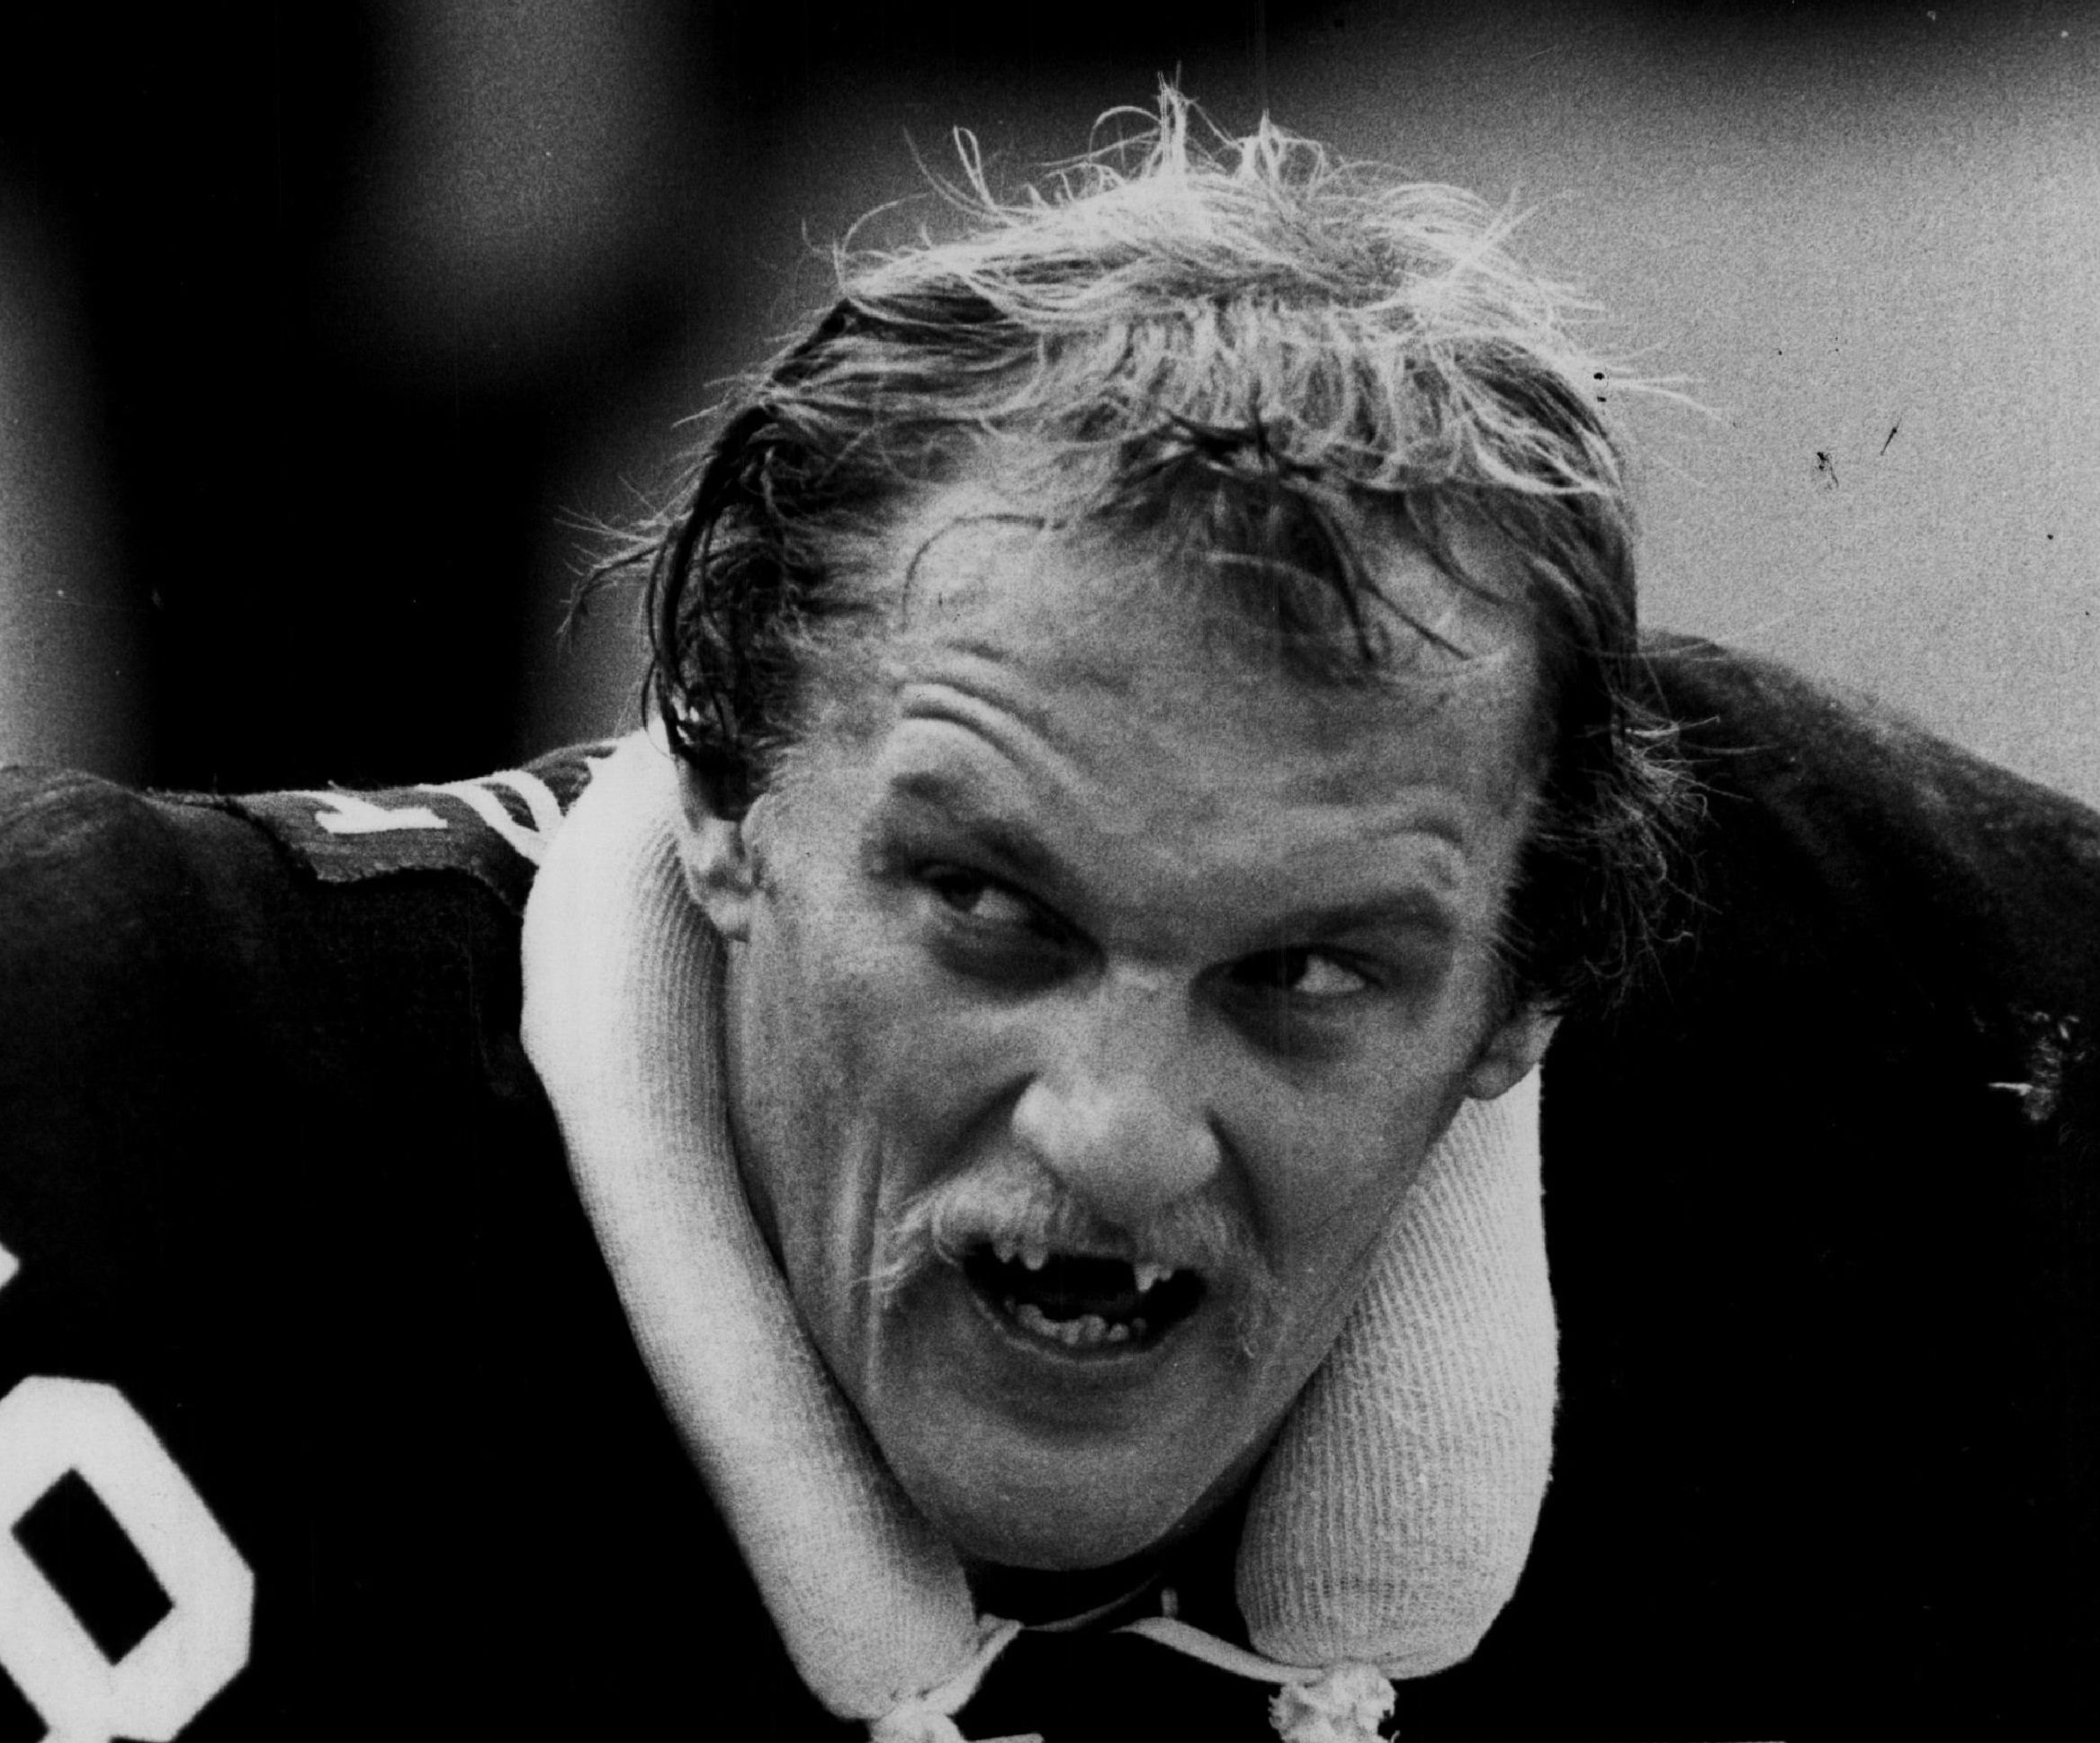 Pittsburgh Steelers linebacker Jack Lambert was an intimidating figure with his trademark scowl. | Sporting News via Getty Images